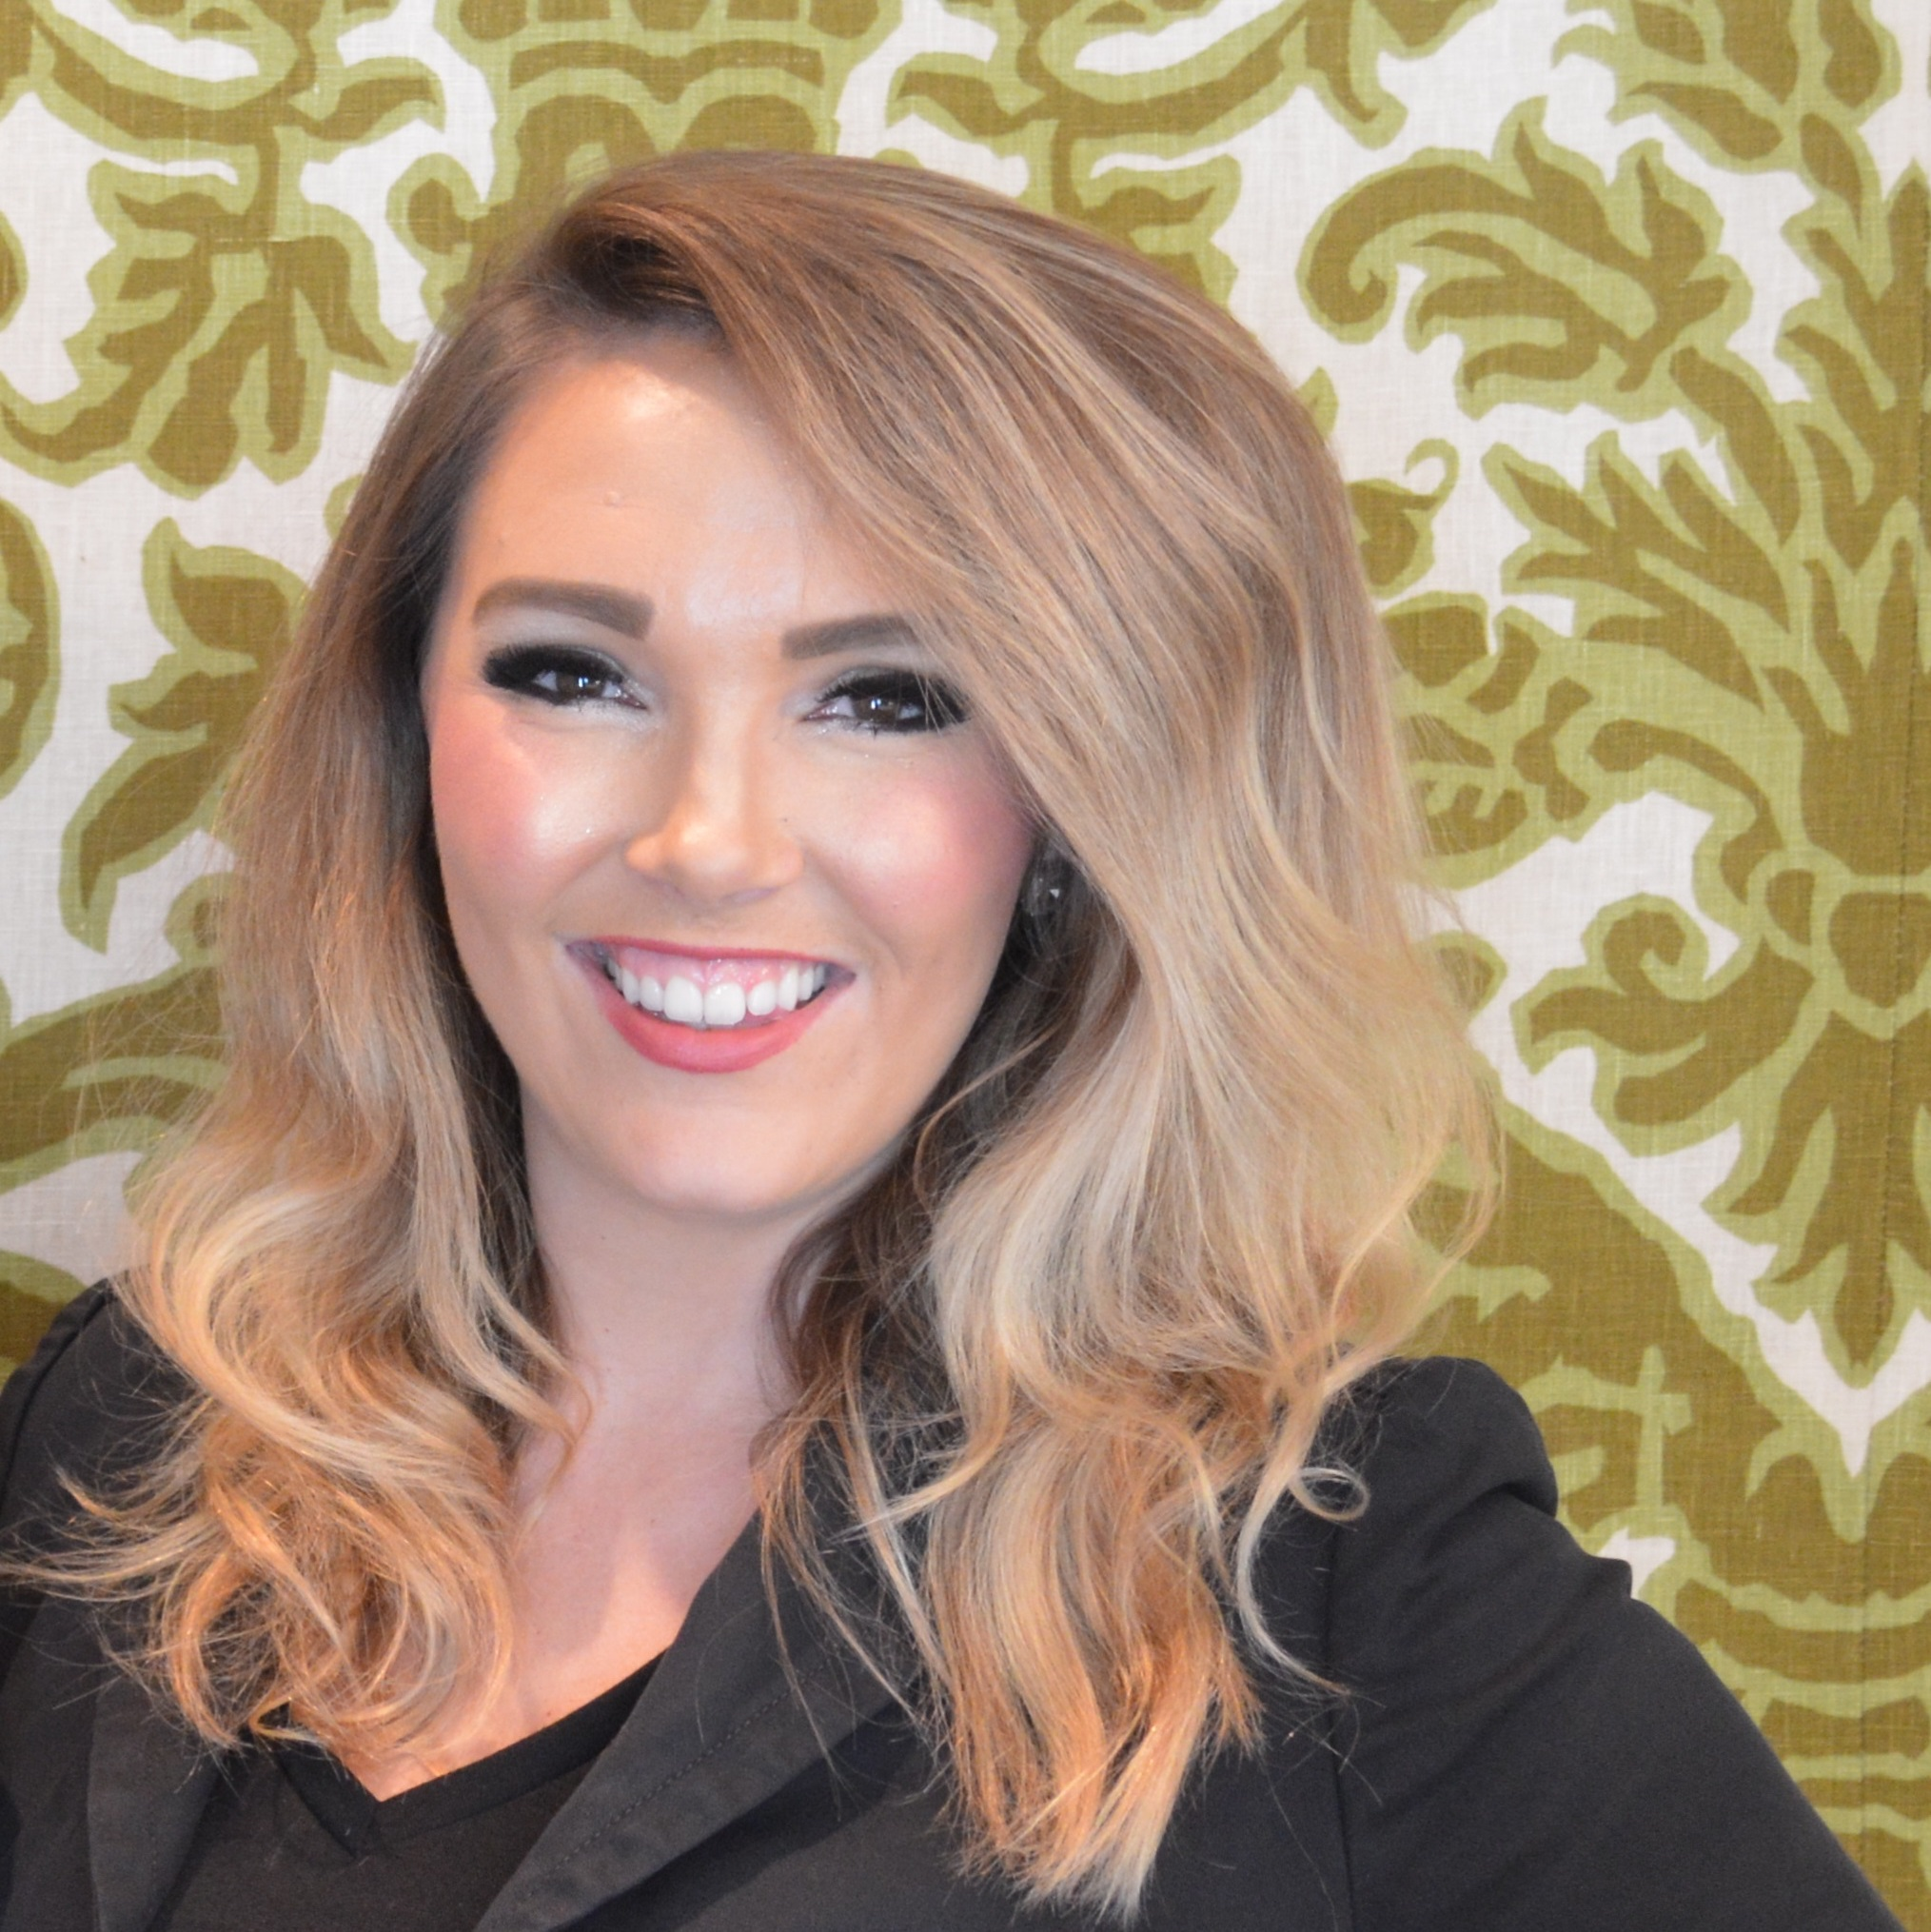 Kaley Hanna, Rosewood Mansion   Jacqueline is the queen of calm, cool, and collected. No matter what situation she is faced with, she handles it efficiently and always gets her clients' vision. She is a true professional. Jacqueline understands every detail of event planning, and does a wonderful job communicating with her clients.